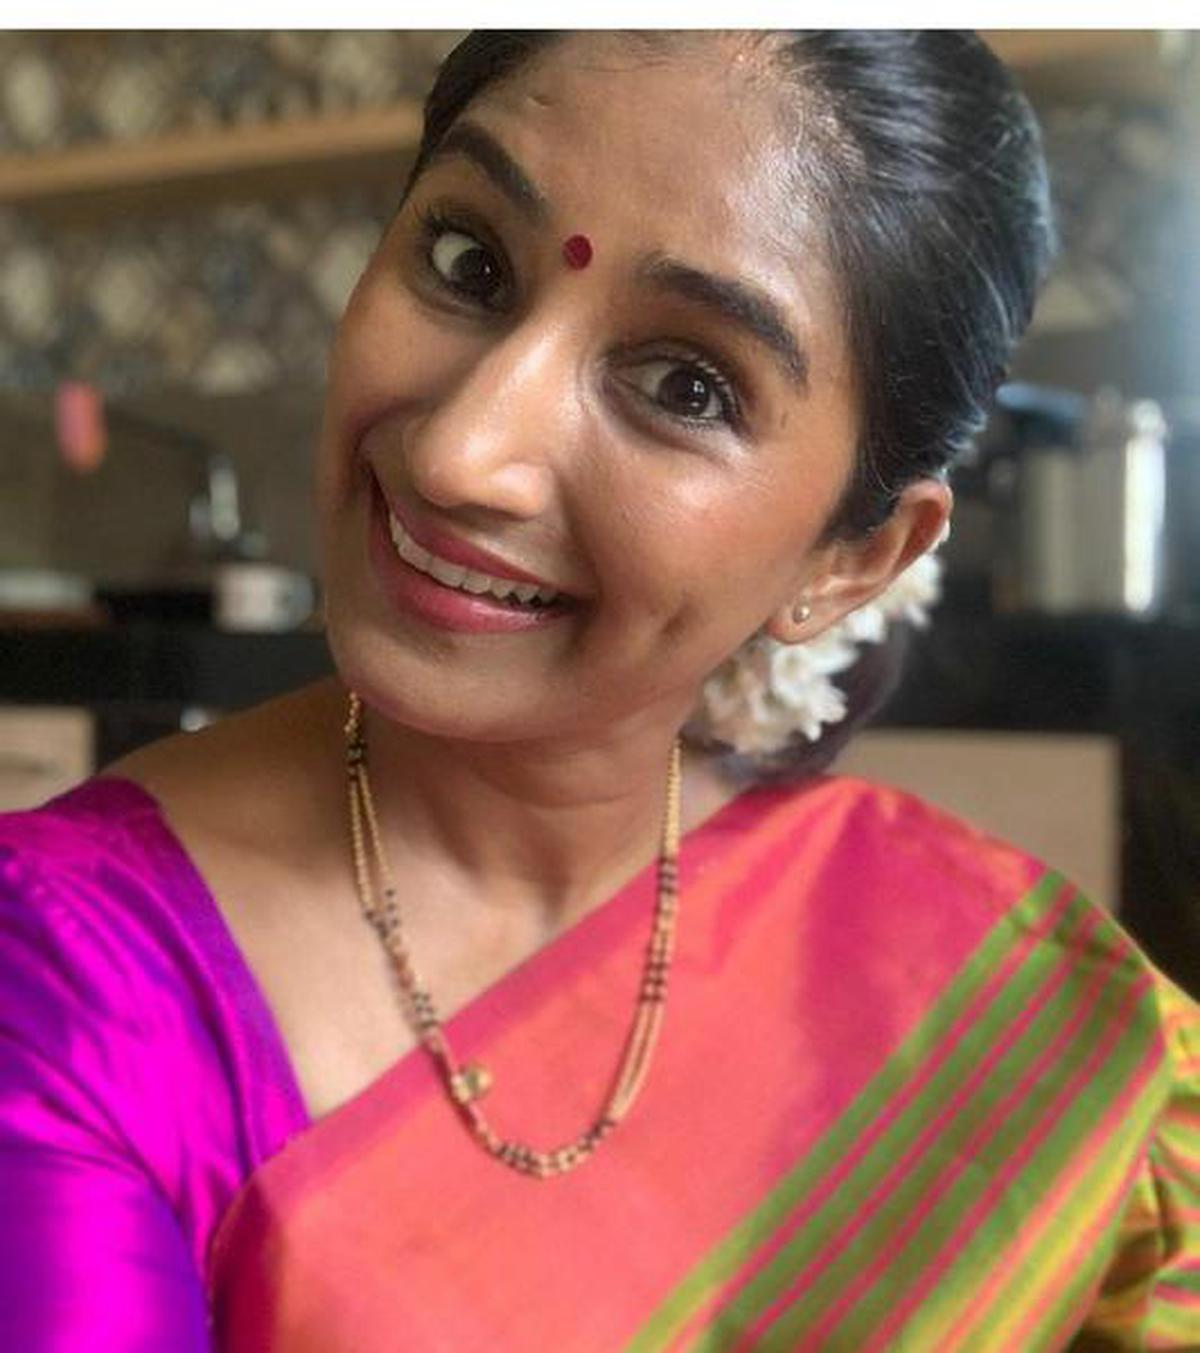 ayyoshraddha, an entertainer to the core